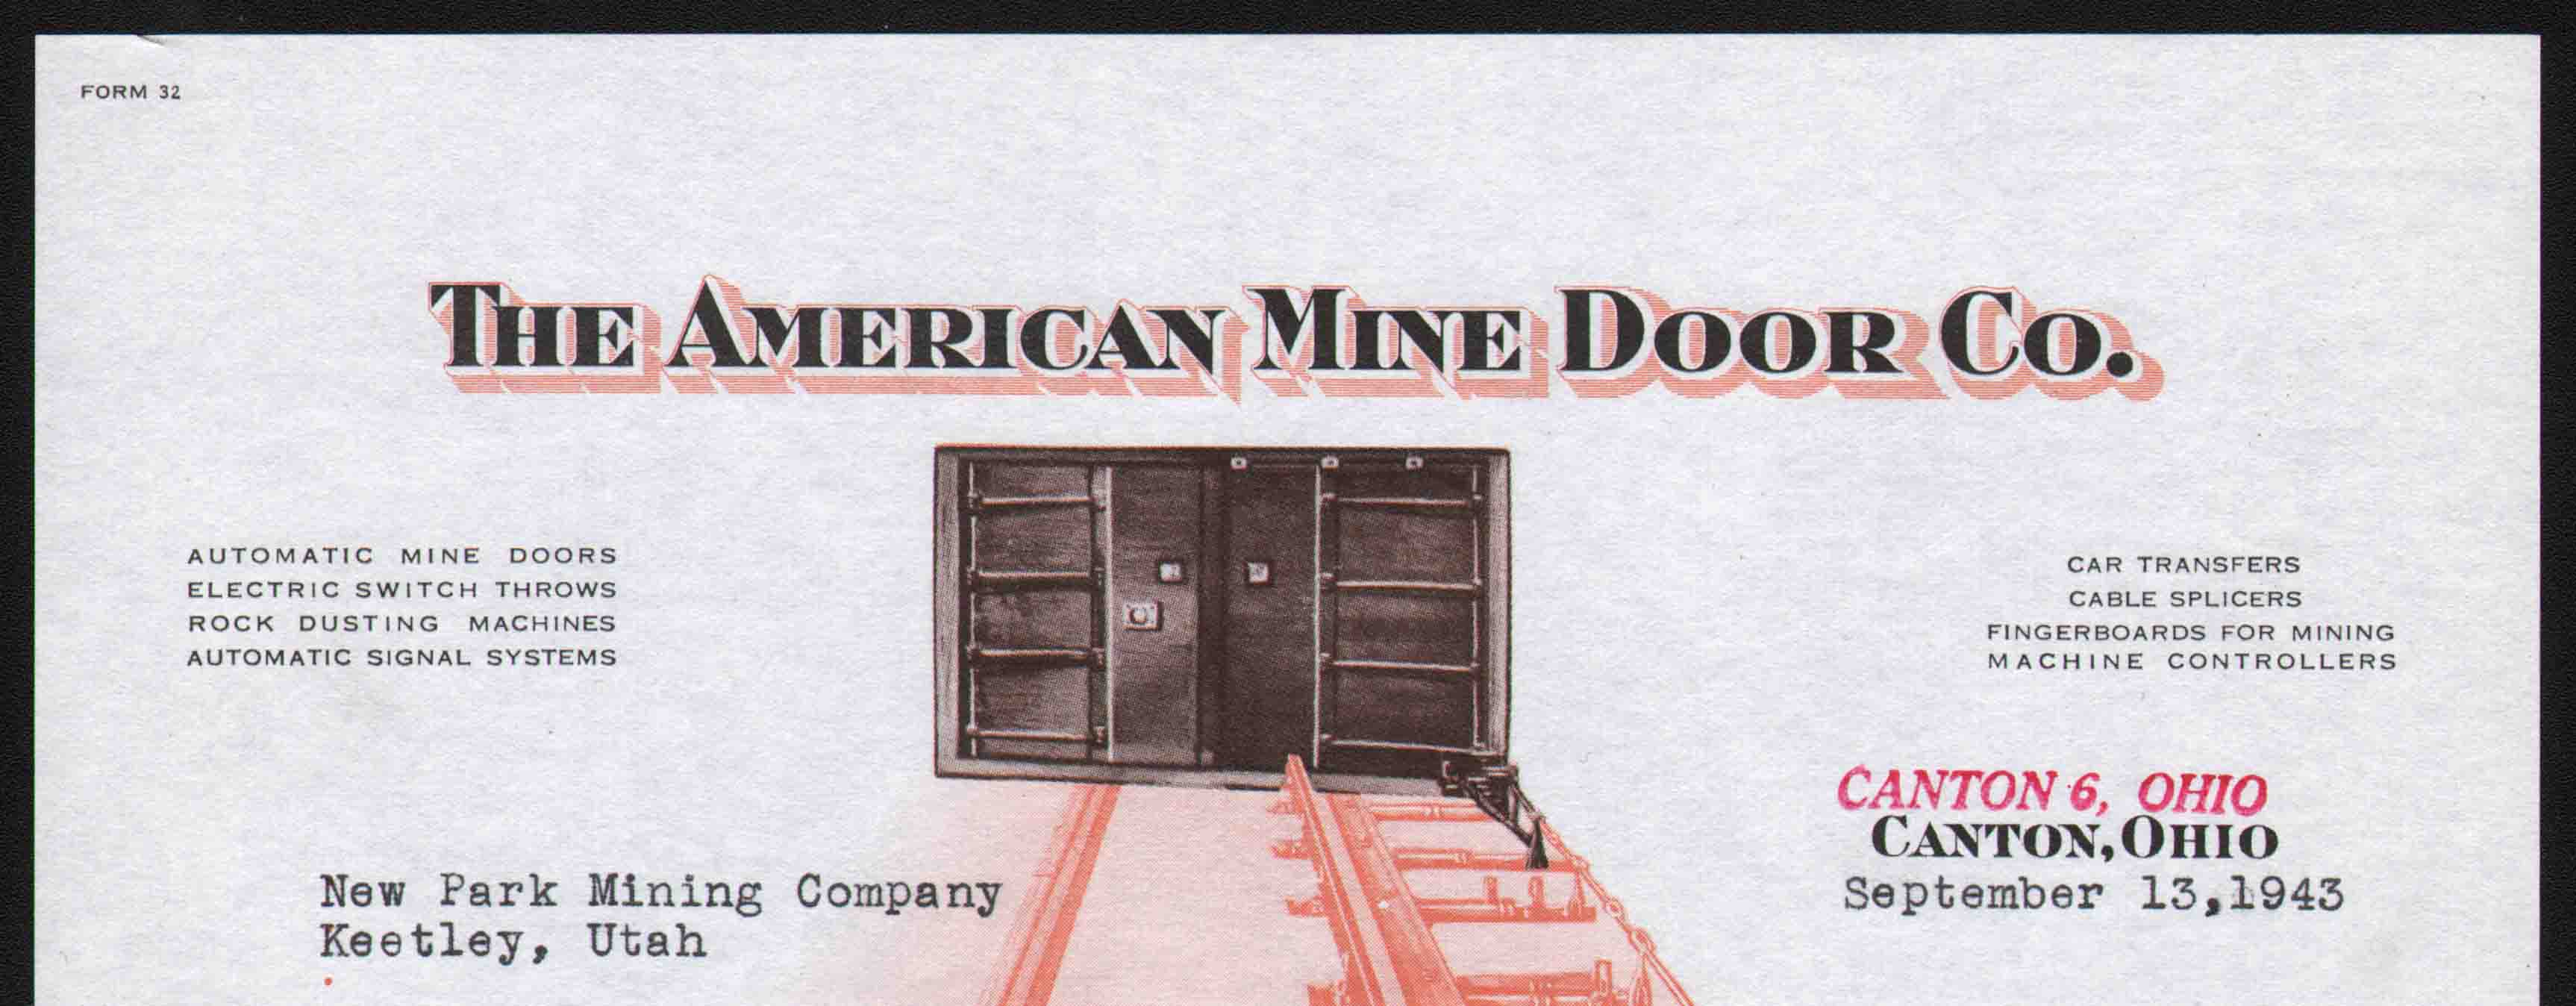 AMERICAN_MINE_DOOR_CO_LETTERHEAD.jpg